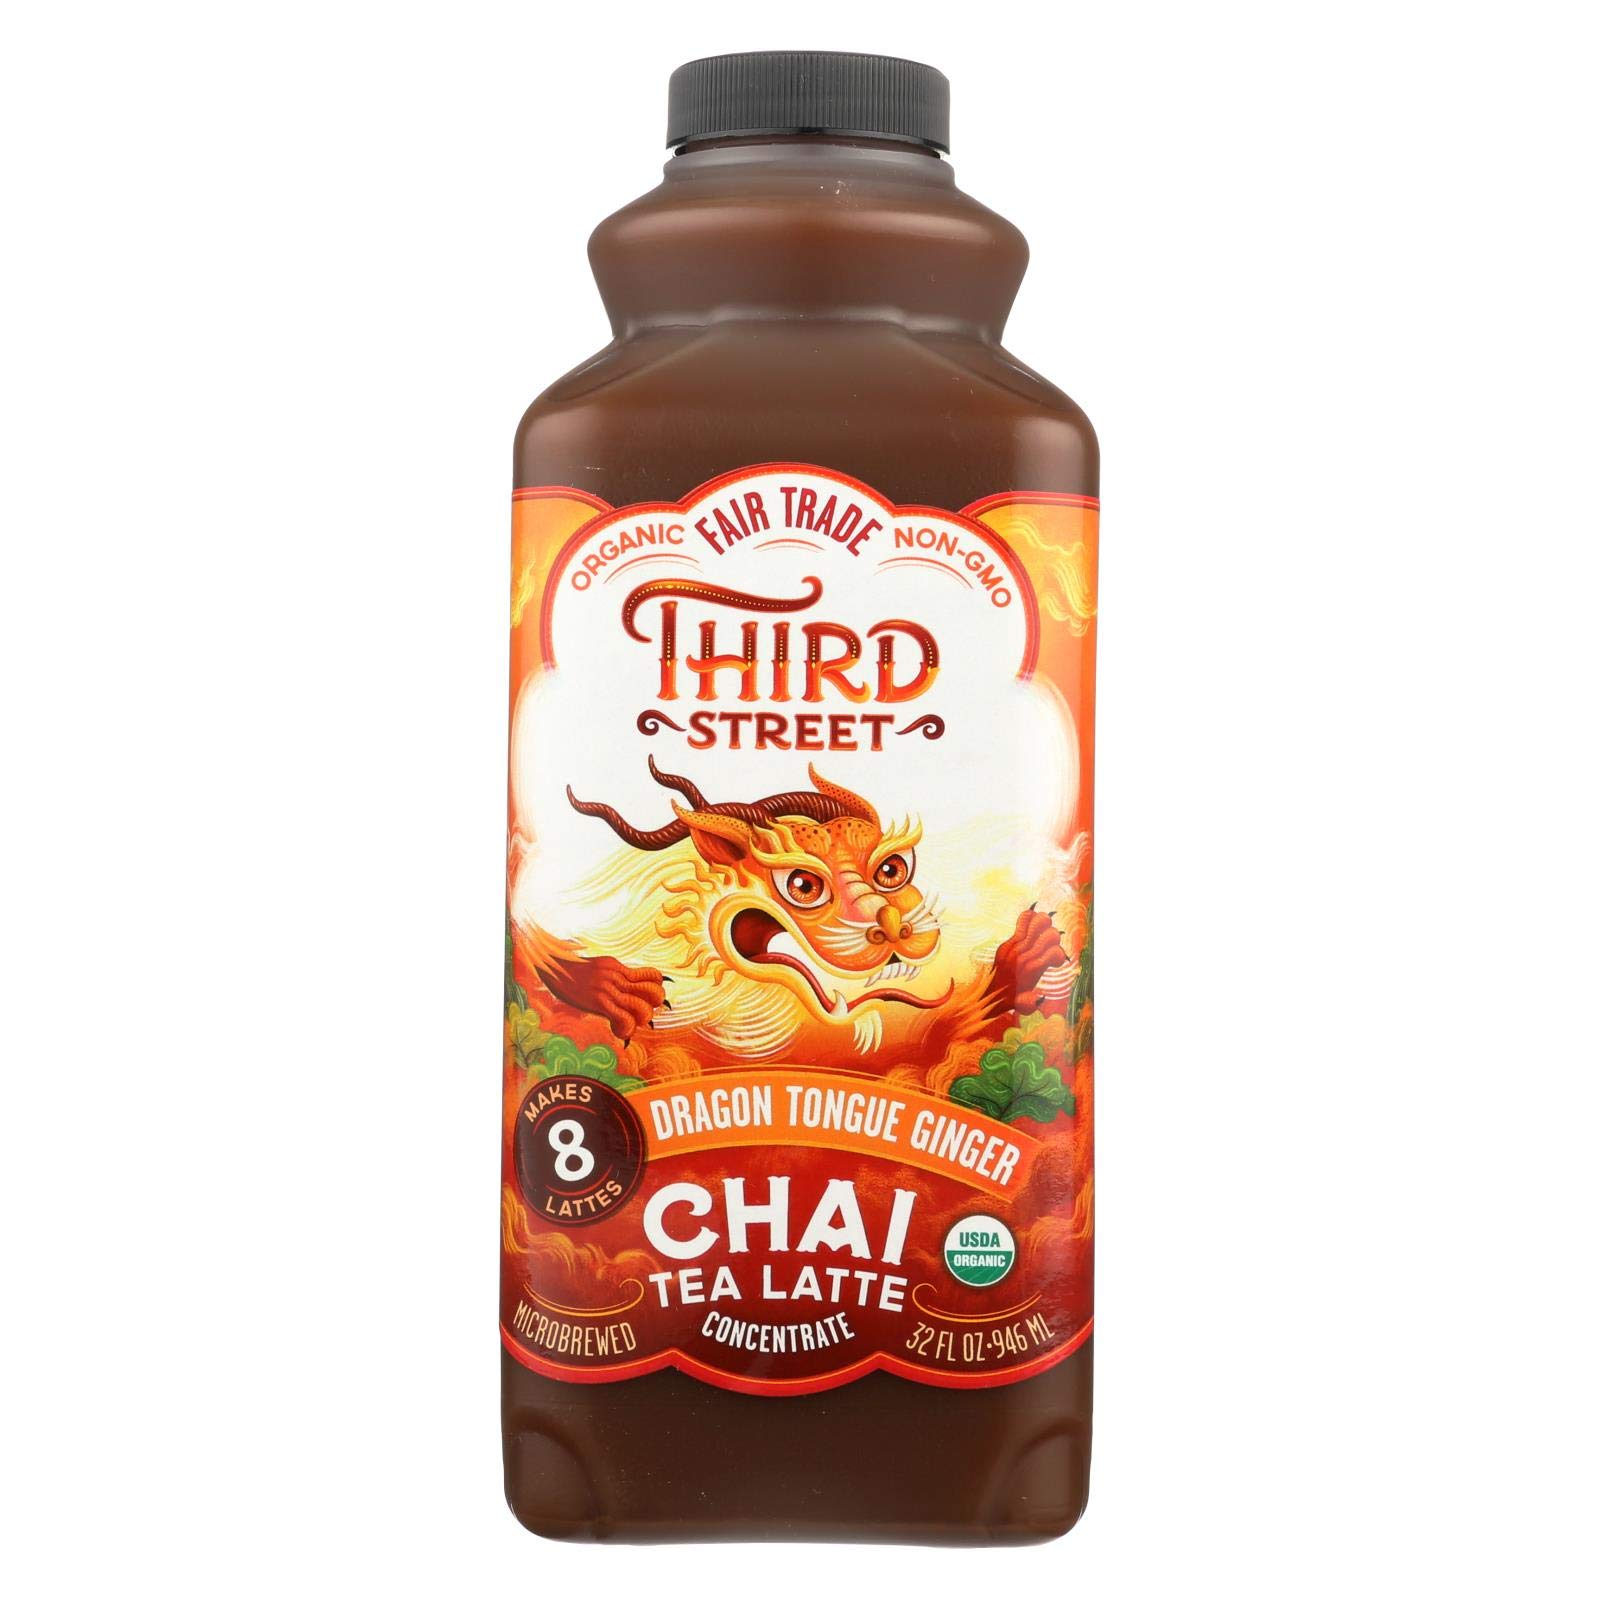 Third Street Chai, organic, Conc ,Dragon Tongue Ginger, Pack of 6, Size - 32 FZ, Quantity - 1 Case